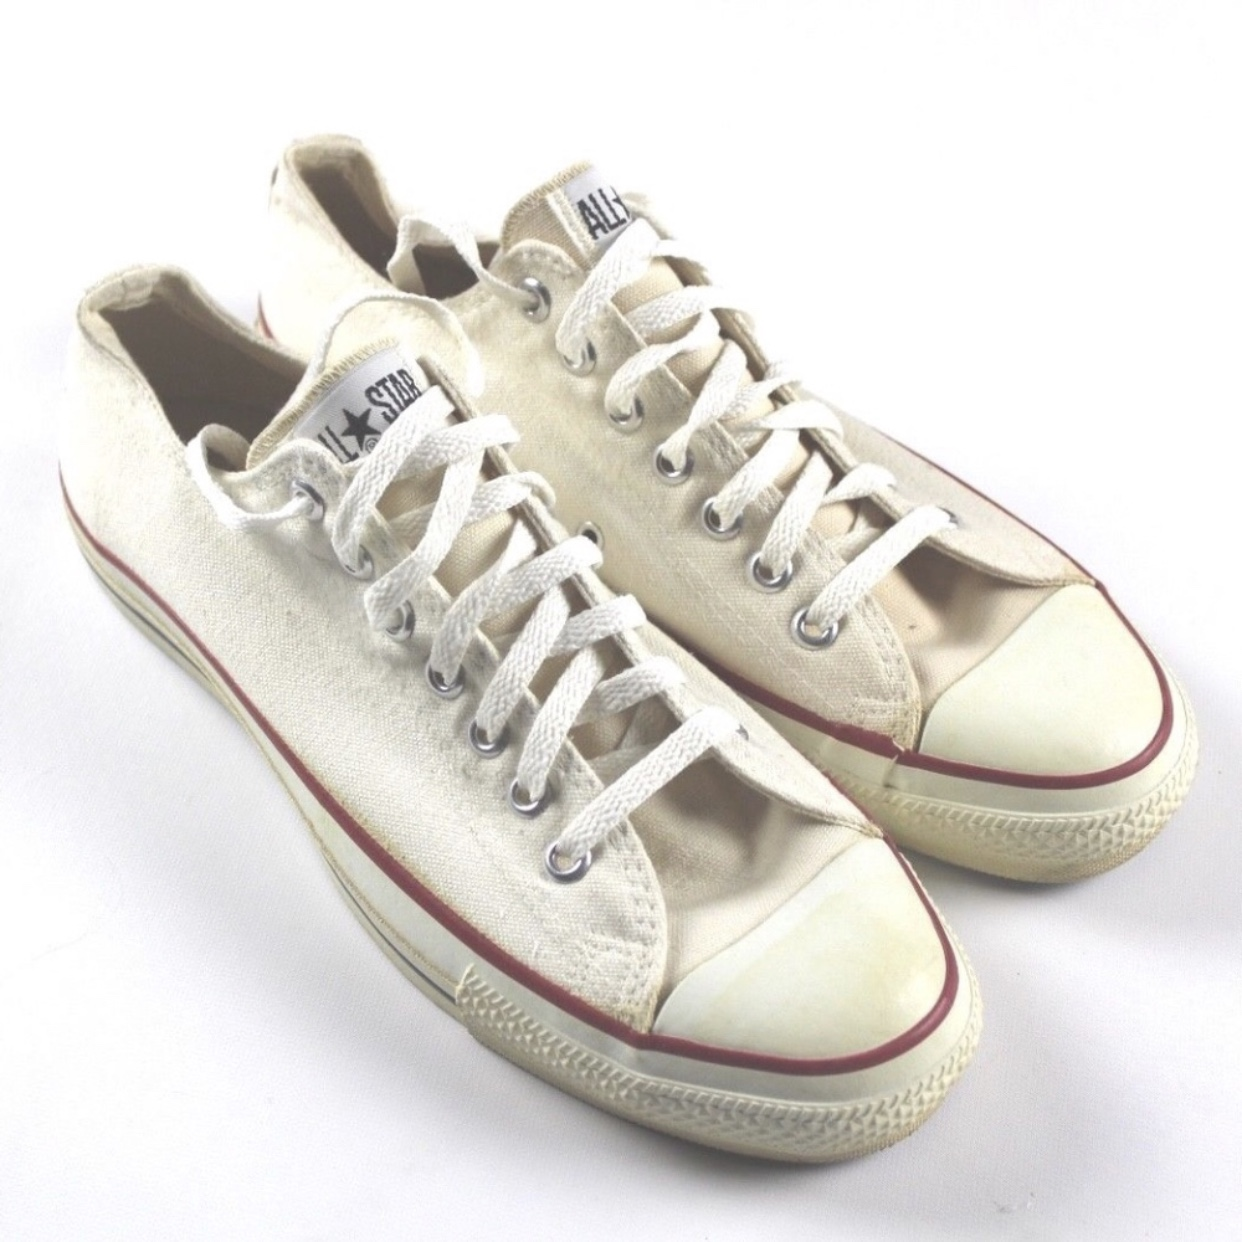 Vintage Converse Made In USA All Star Low Top Depop